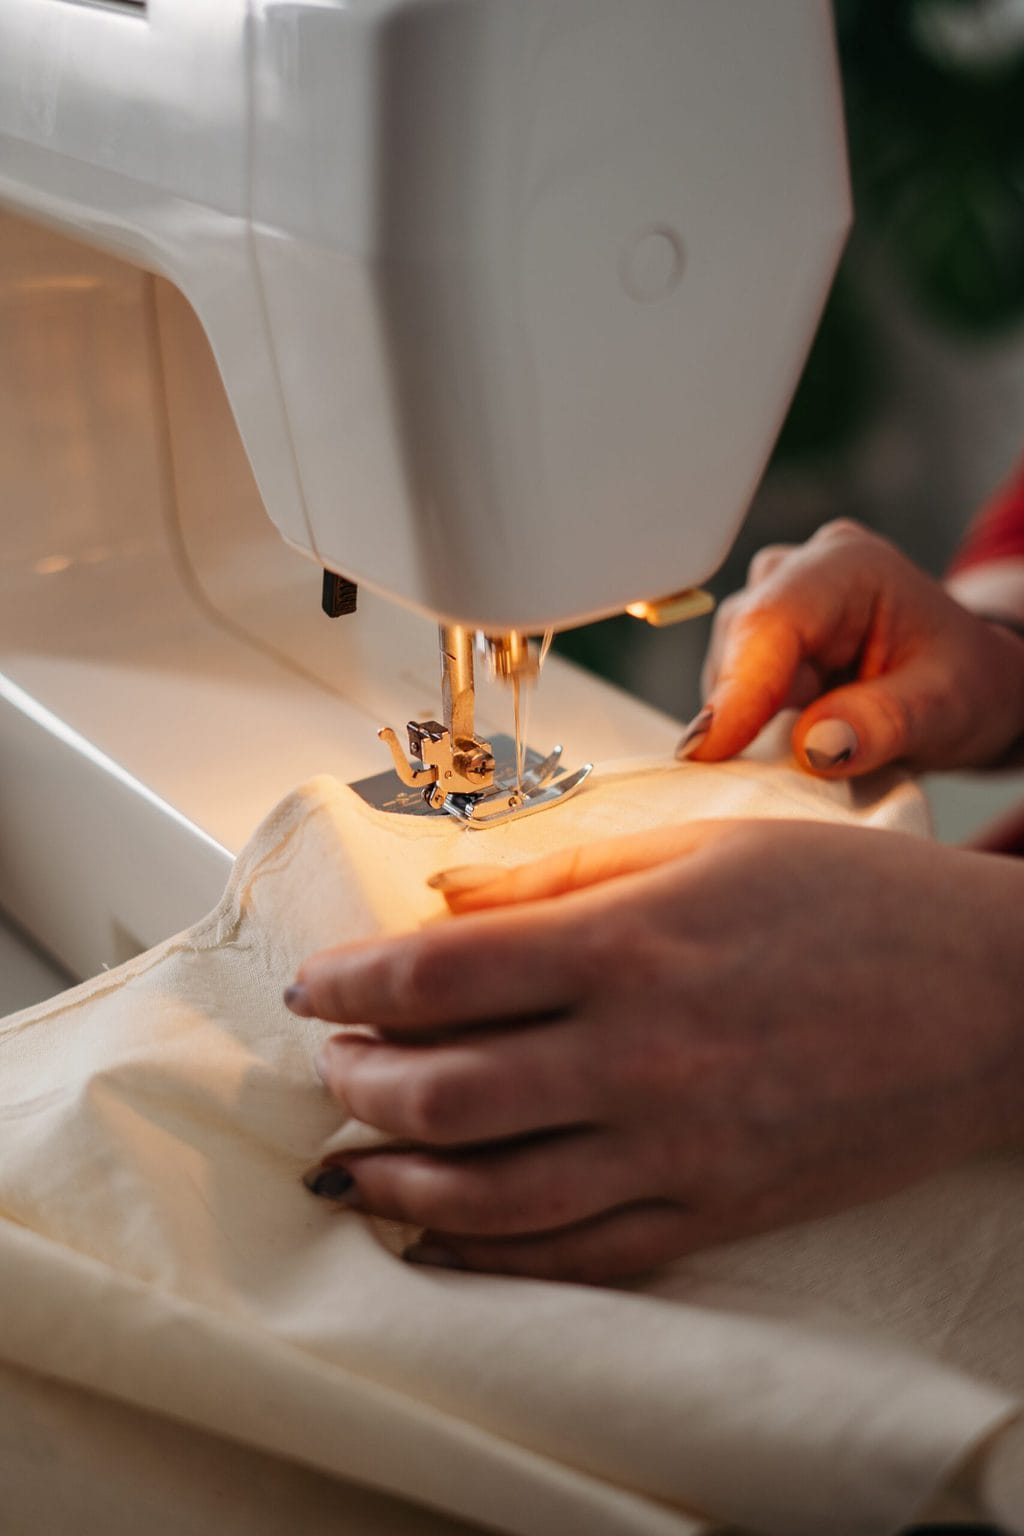 Fashion tips for big busts - get things tailored. Stock photo of sewing with a machine